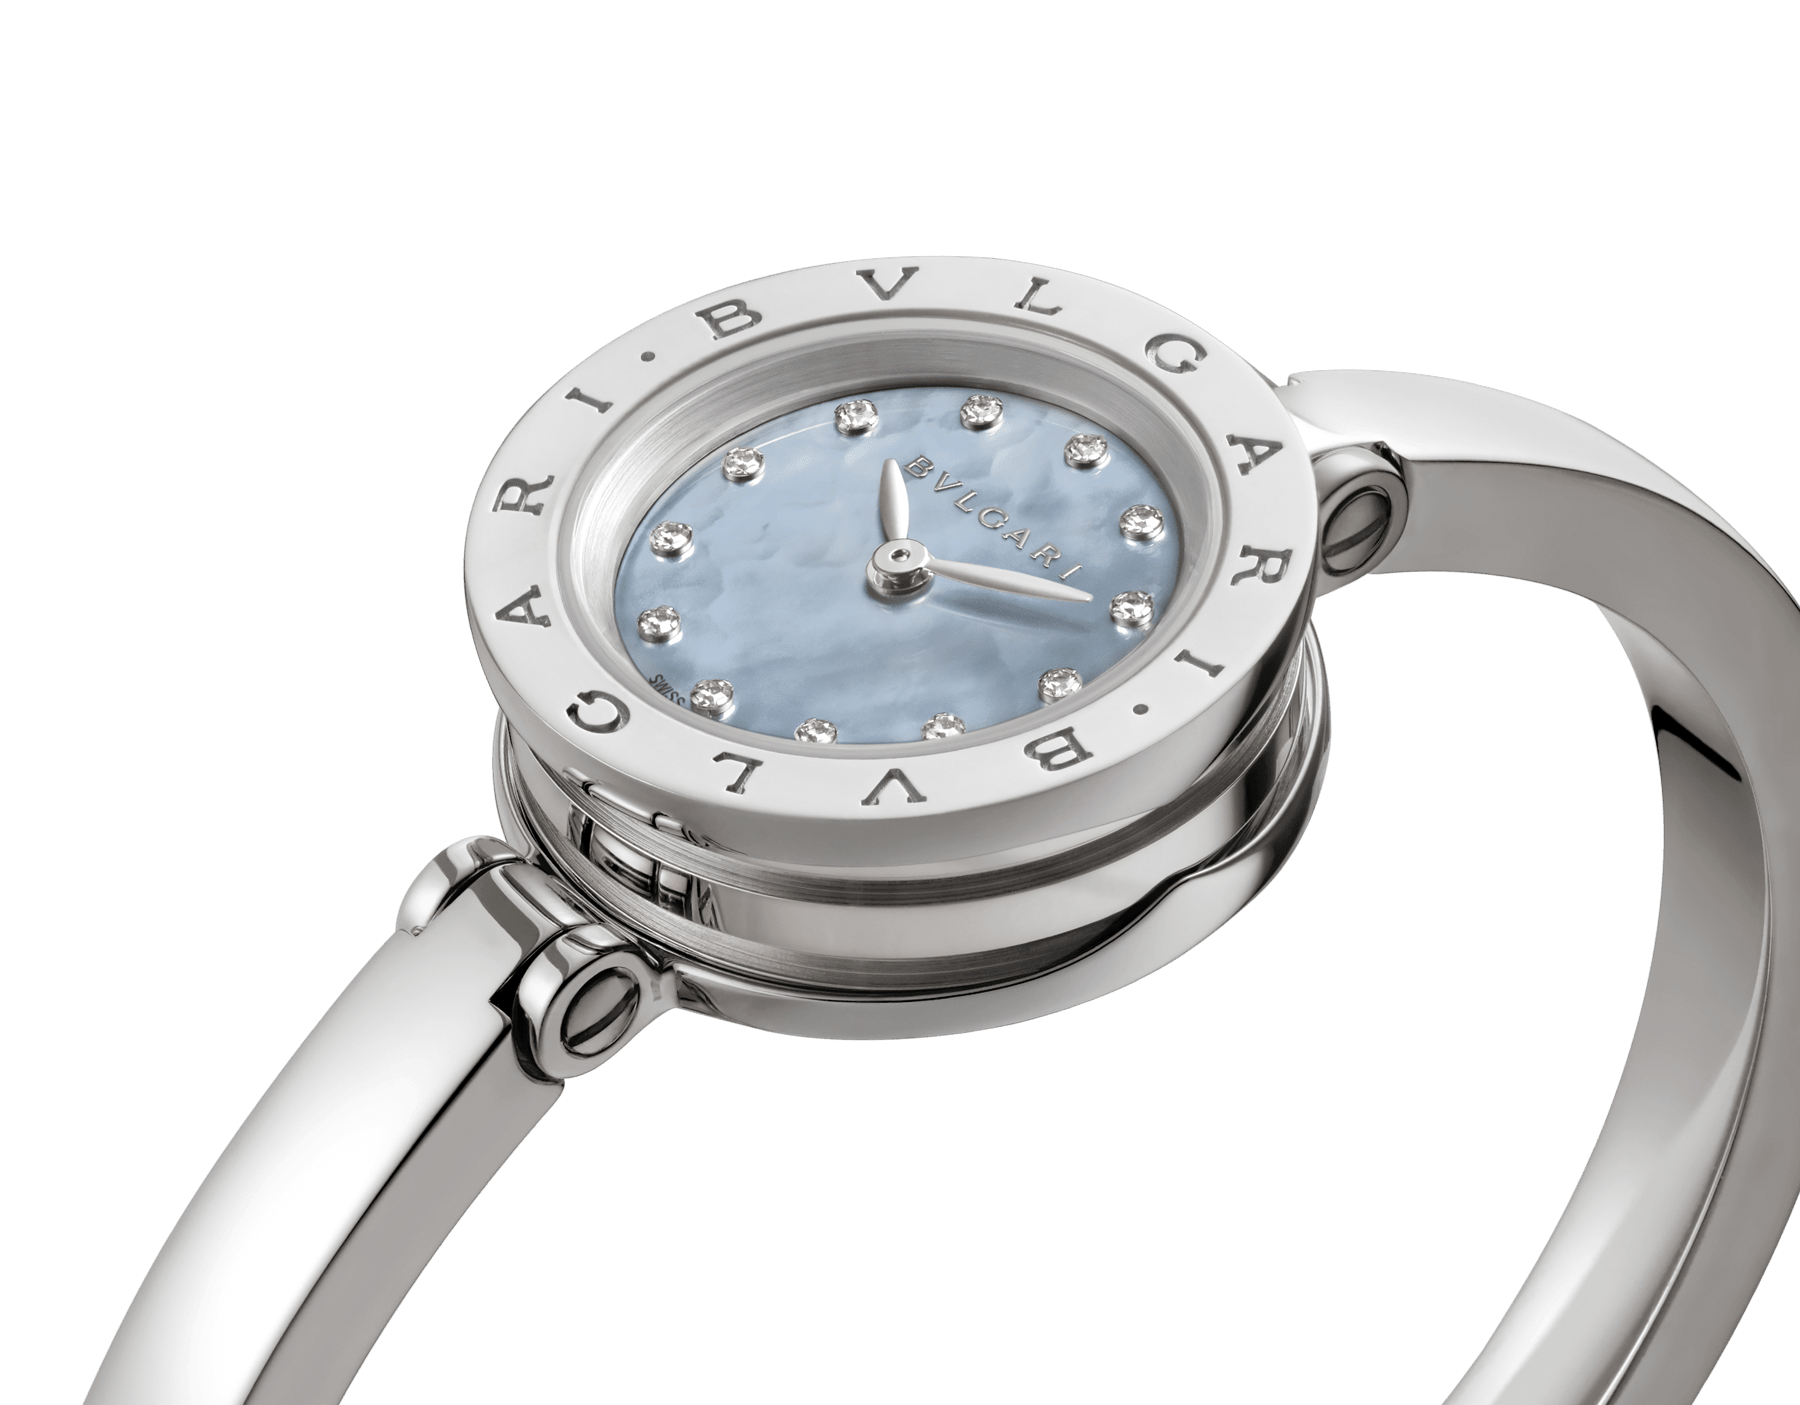 B.zero1 watch with stainless steel case, blue mother-of-pearl dial set with diamond indexes and stainless steel bangle. Medium size. B01watch-white-white-dial2 image 1